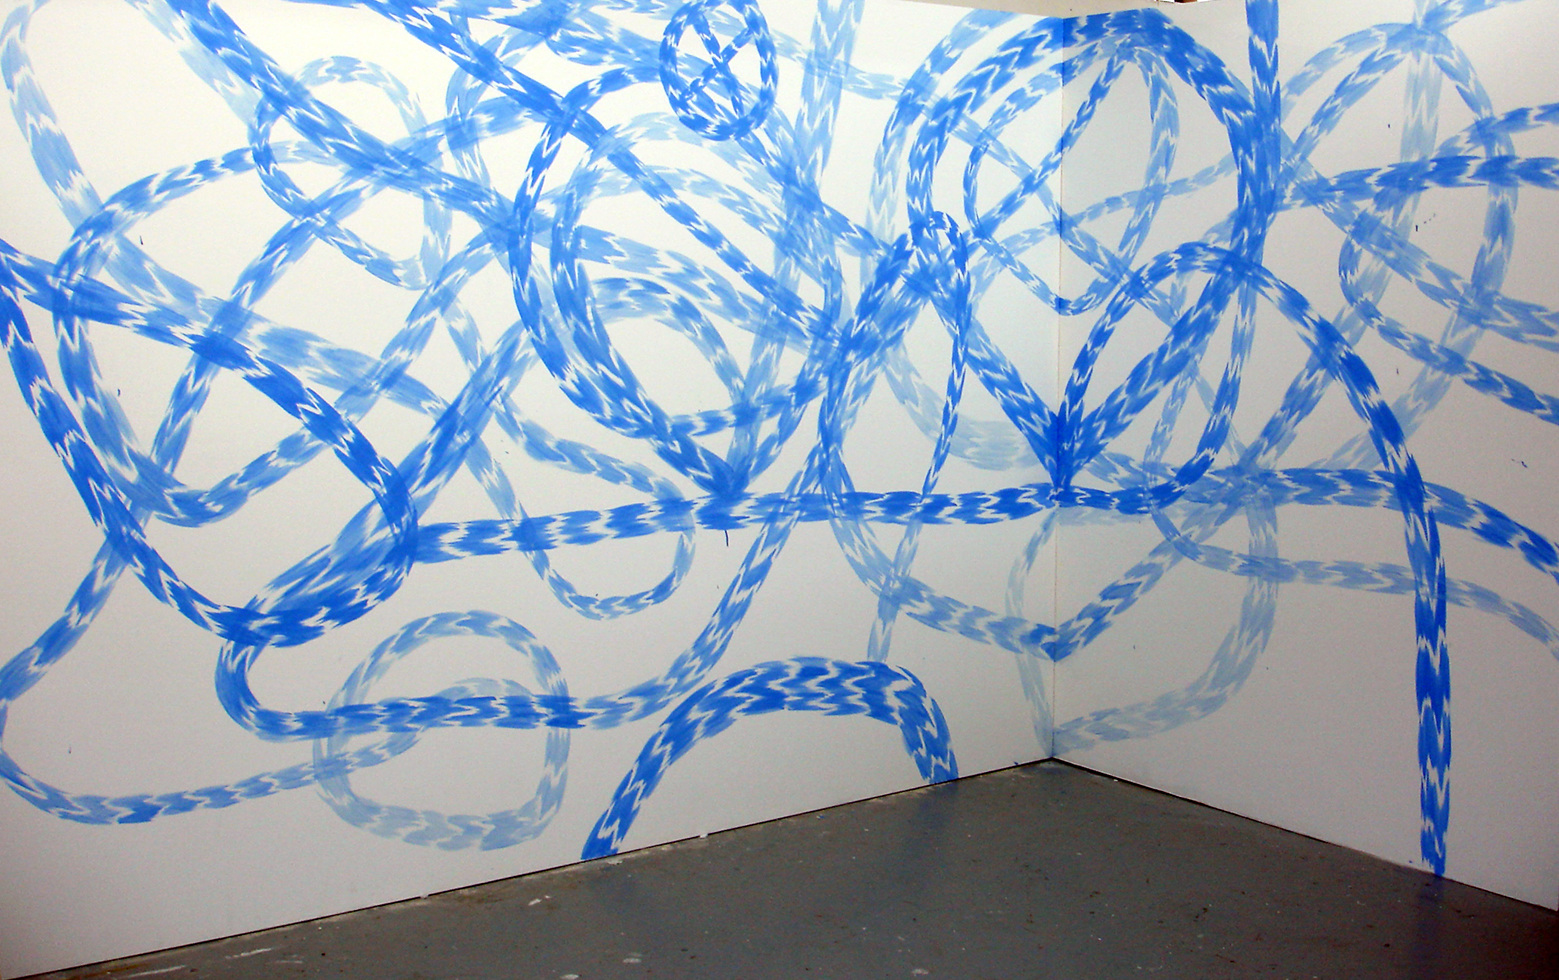 WORKS Stream Spectacle (Blue), oil on panel, panel 1. 2400 x 1200 mm, panel 2. 600 x 1200 mm, 2010.